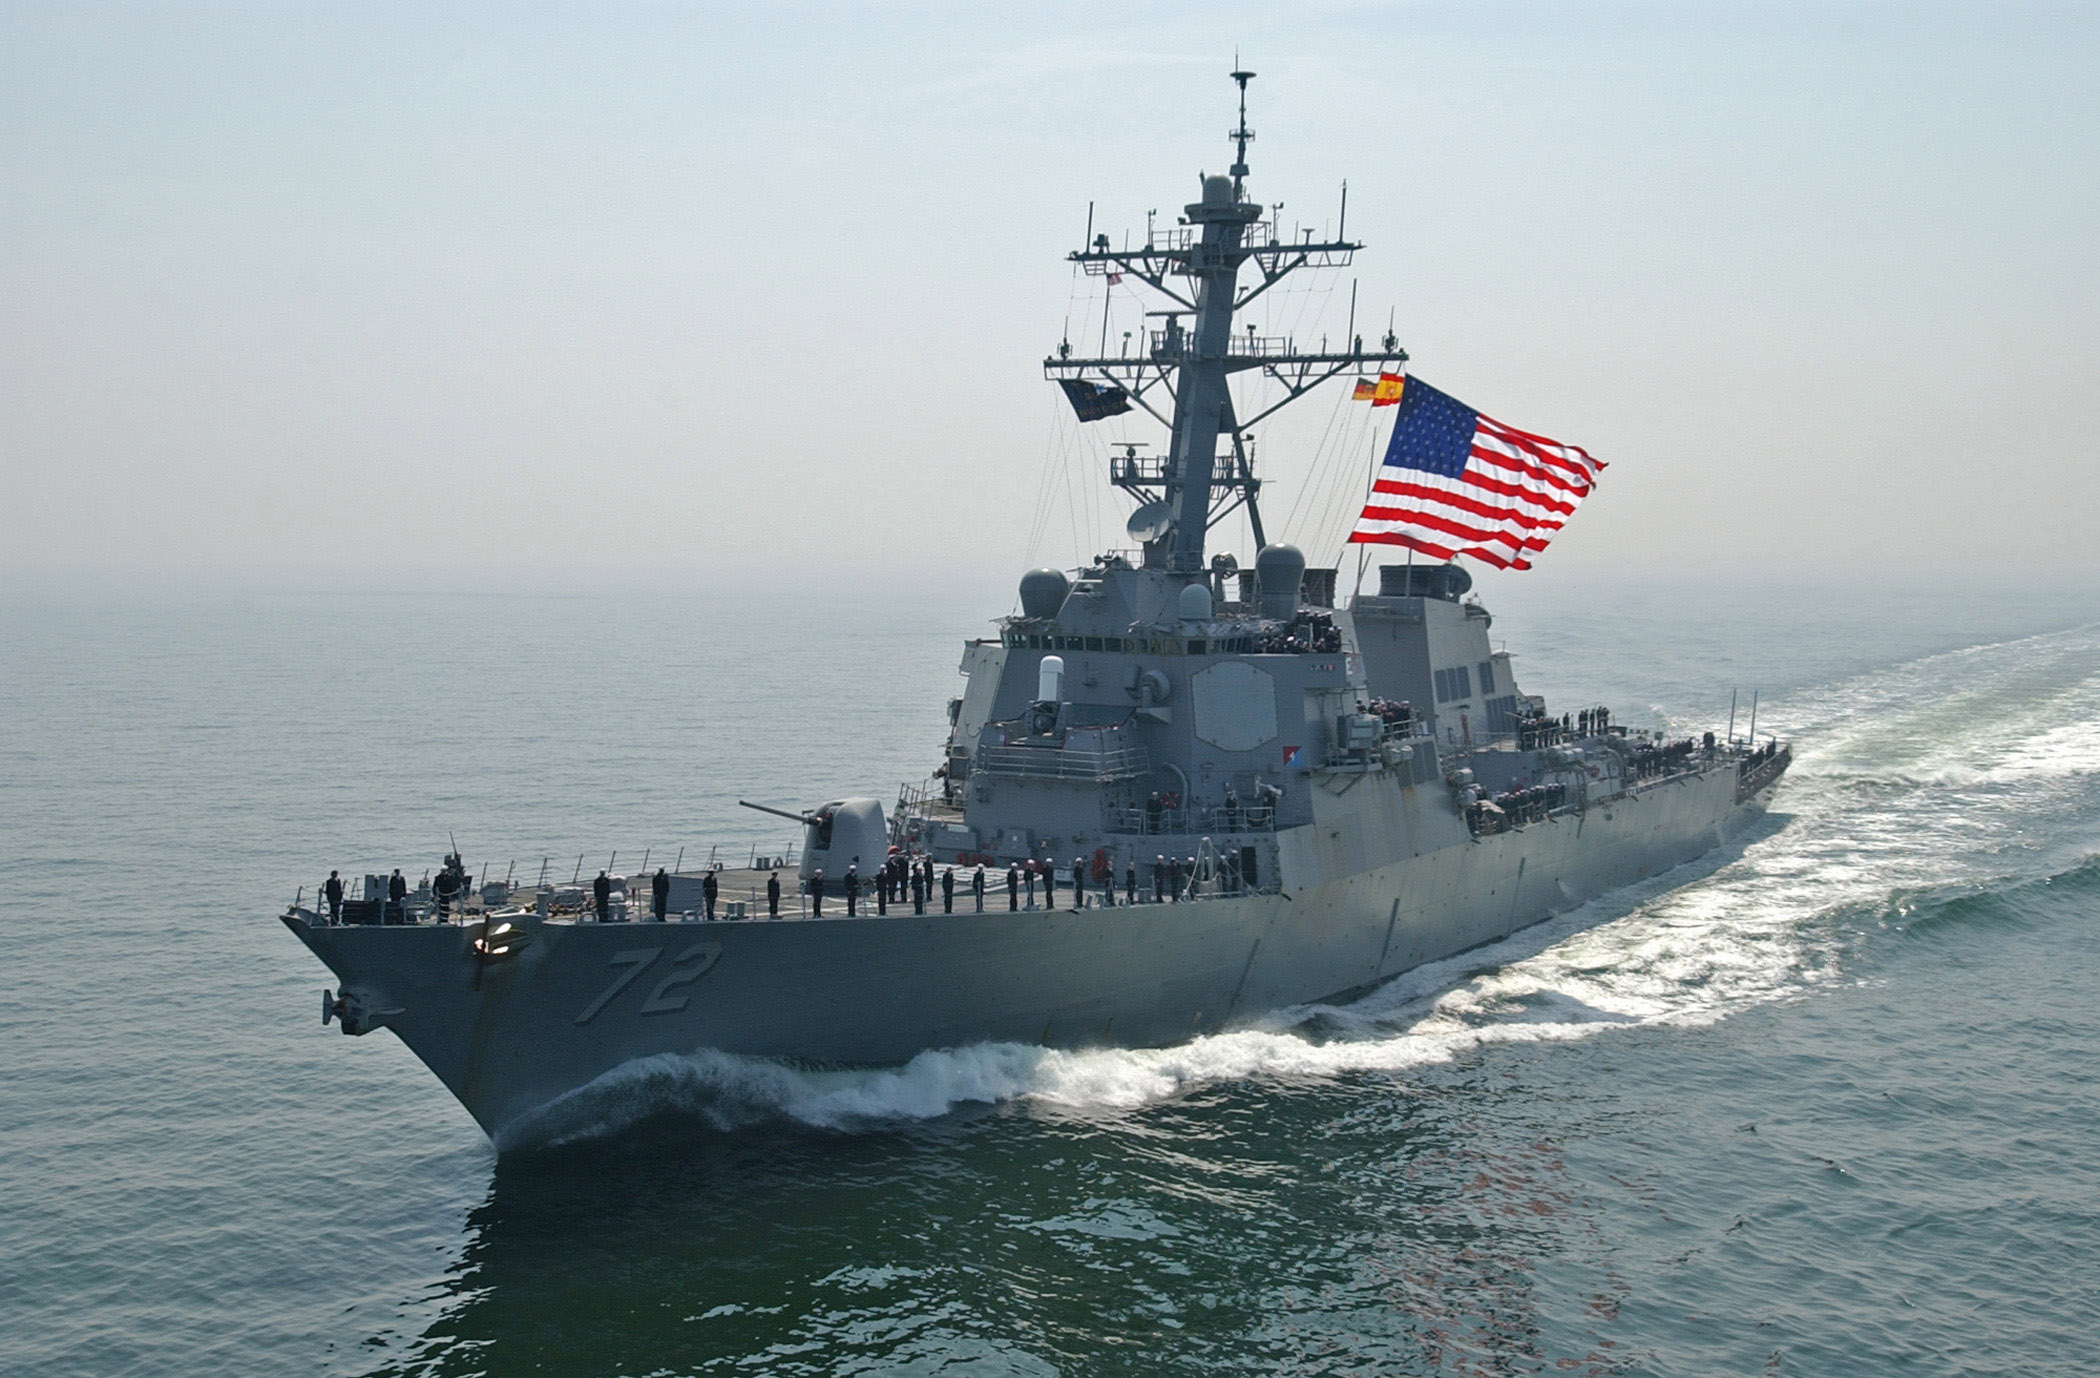 U.S. Navy Destroyer Fires Warning Shots At Iranian Vessels Featured